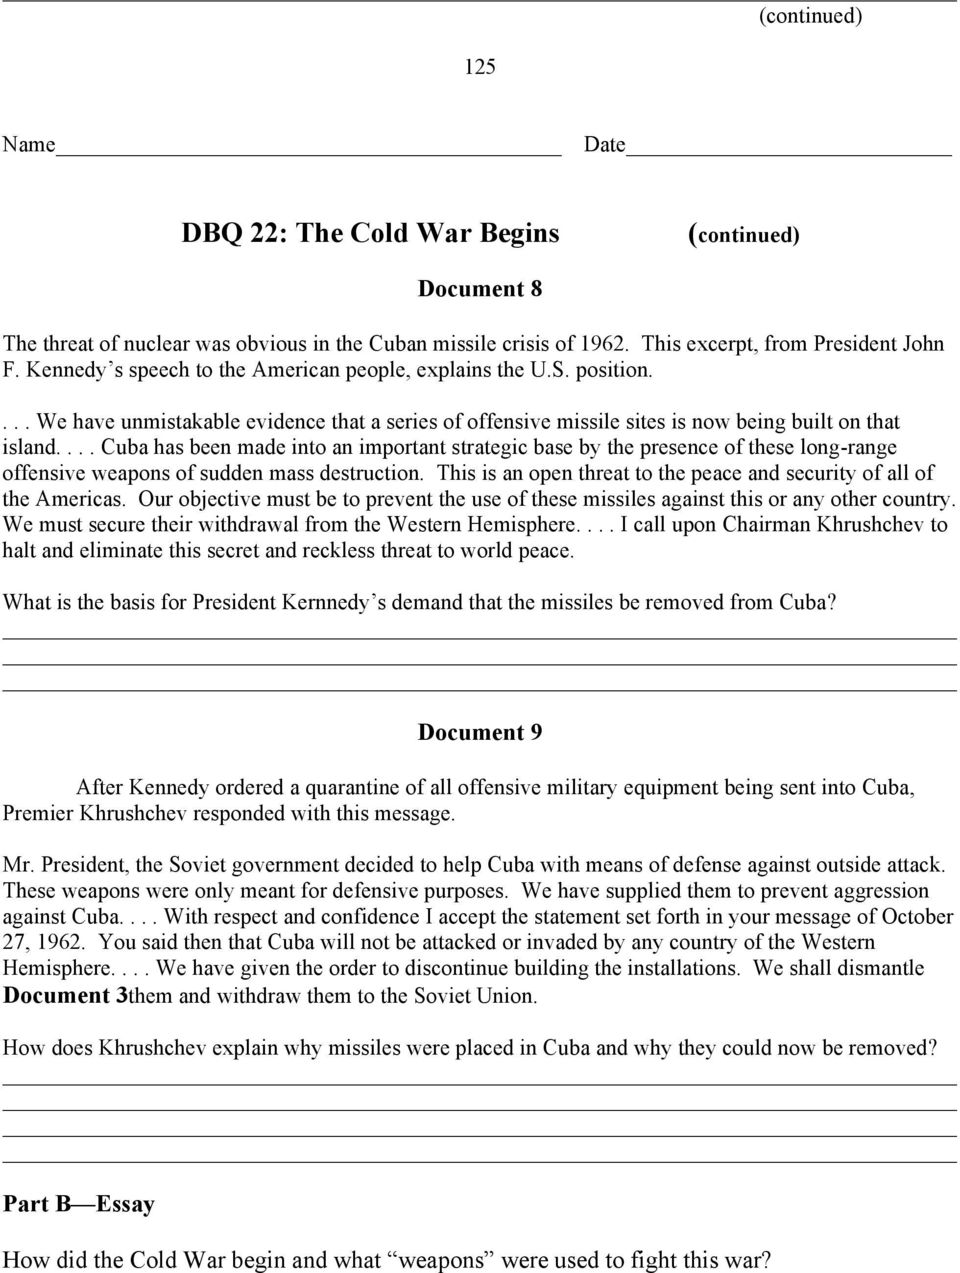 dbq 20 the cold war begins answers